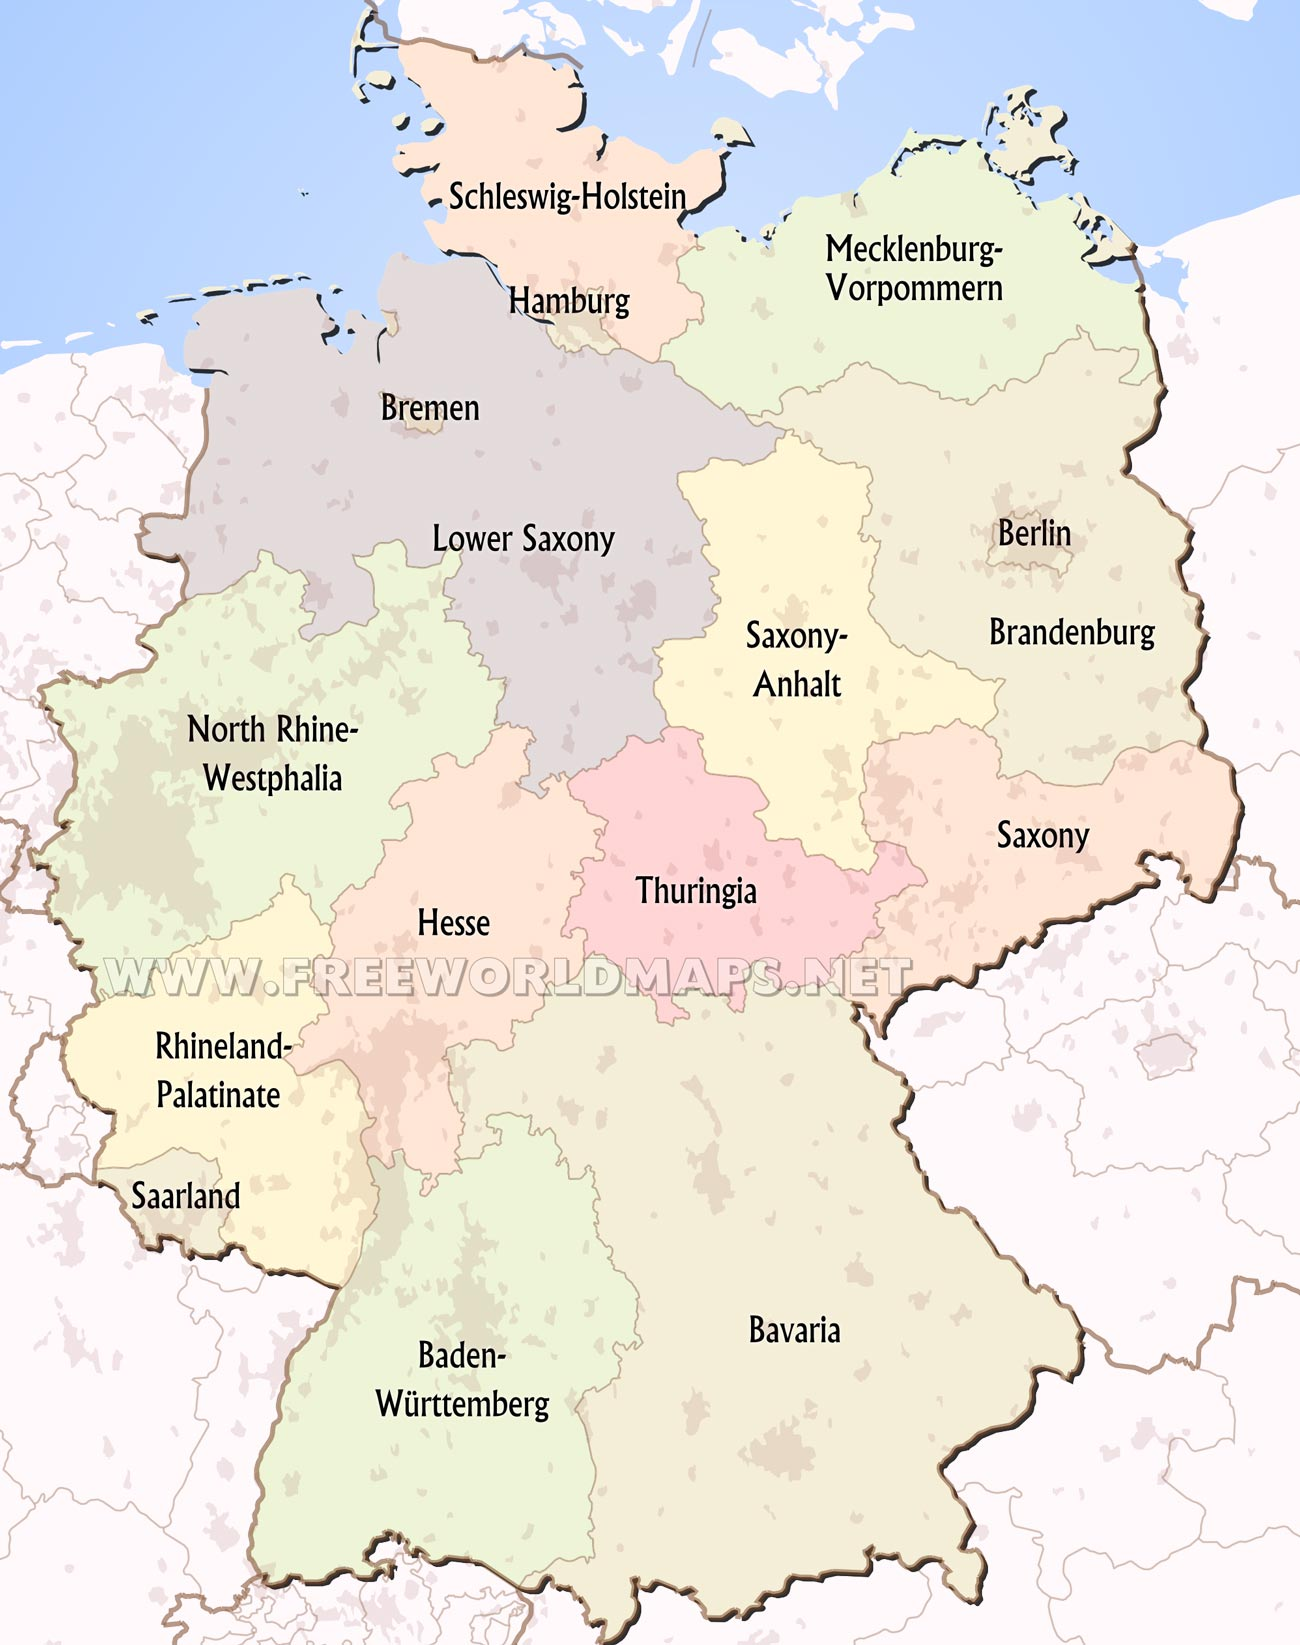 Maps Saarbrücken Germany Political Map